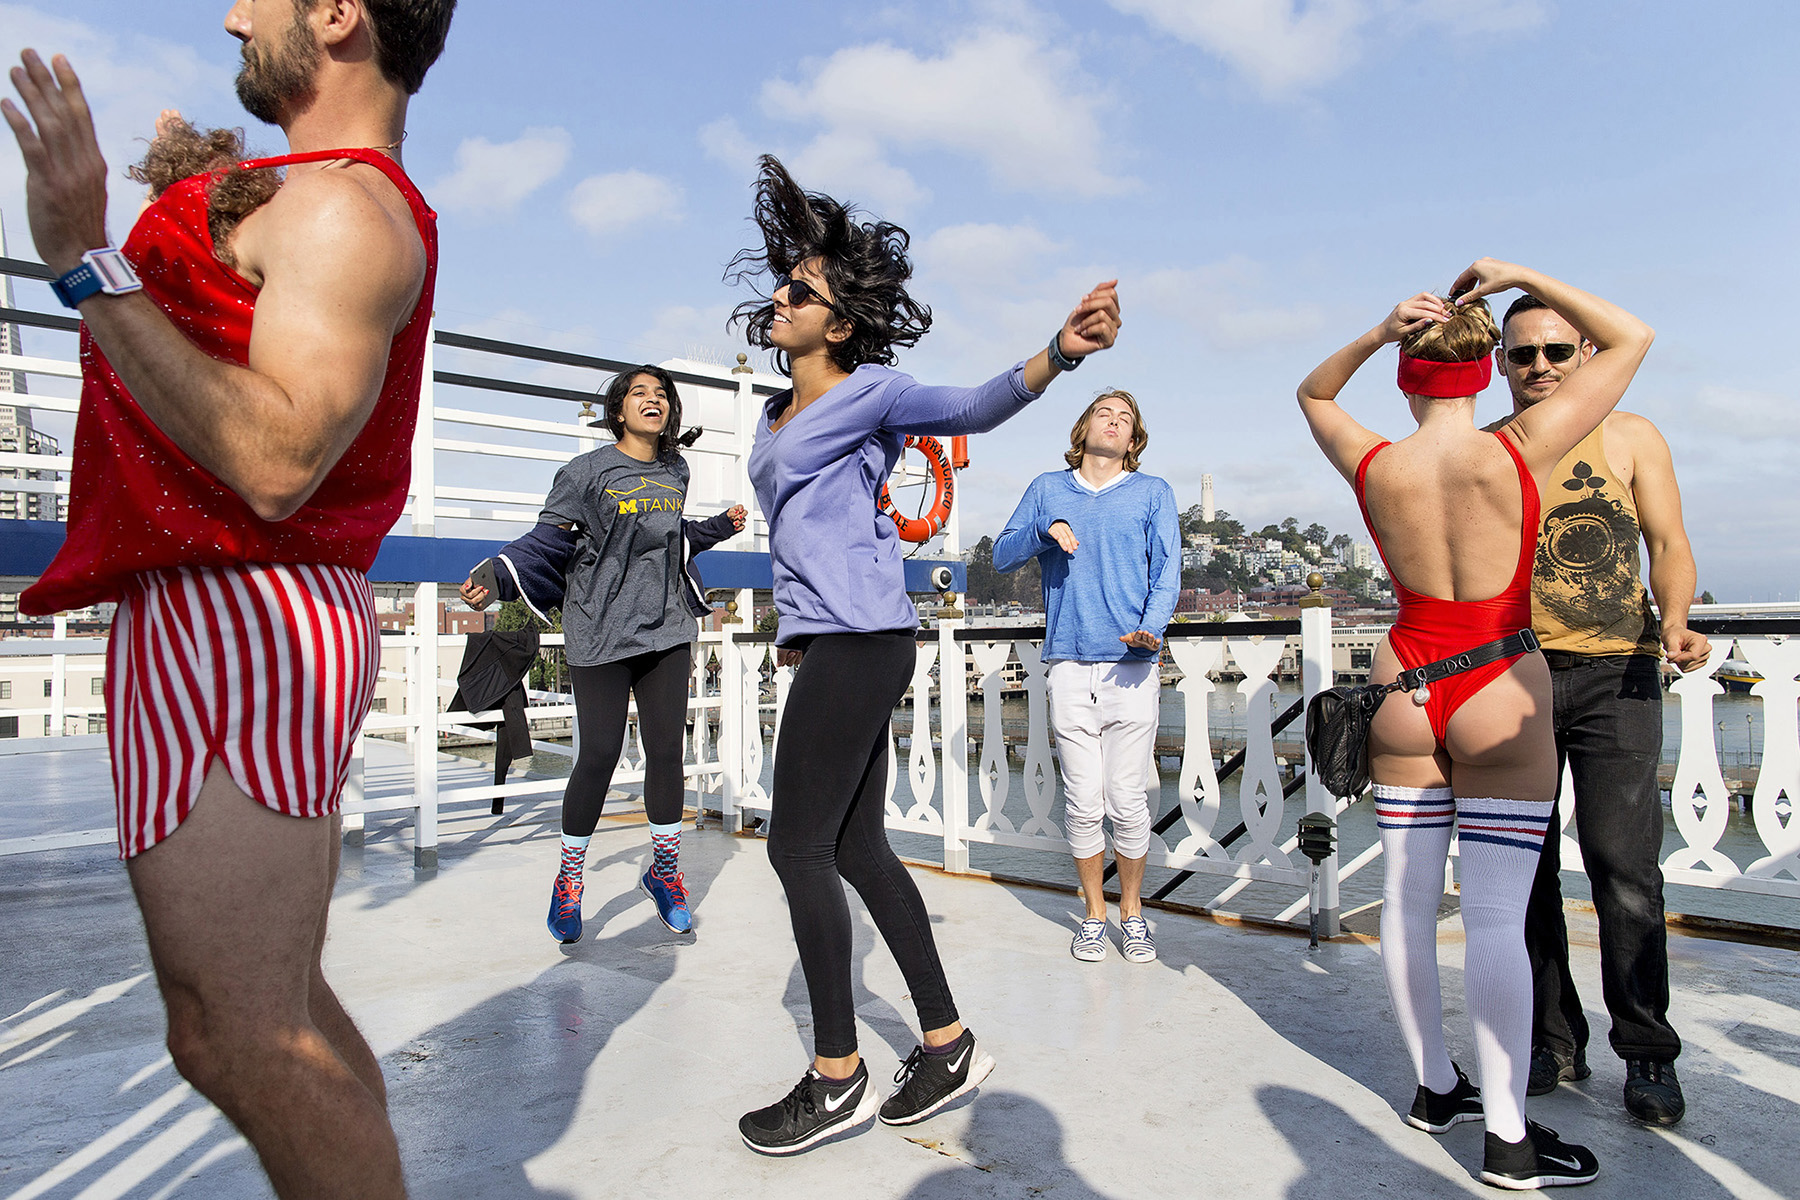 Samidha Visai, center, and Anushree Vora, second from left, dance on a cruise ship while attending an early-morning dance party called Daybreaker in San Francisco, California in August 2015. The two university students from Michigan were spending the summer in San Francisco to intern at health technology start-ups. Daybreaker events, which are substance free dance parties held early in the morning on weekdays, are very popular with young technology workers. Attendees often go straight to work from the event, energized by the dancing for the day ahead.